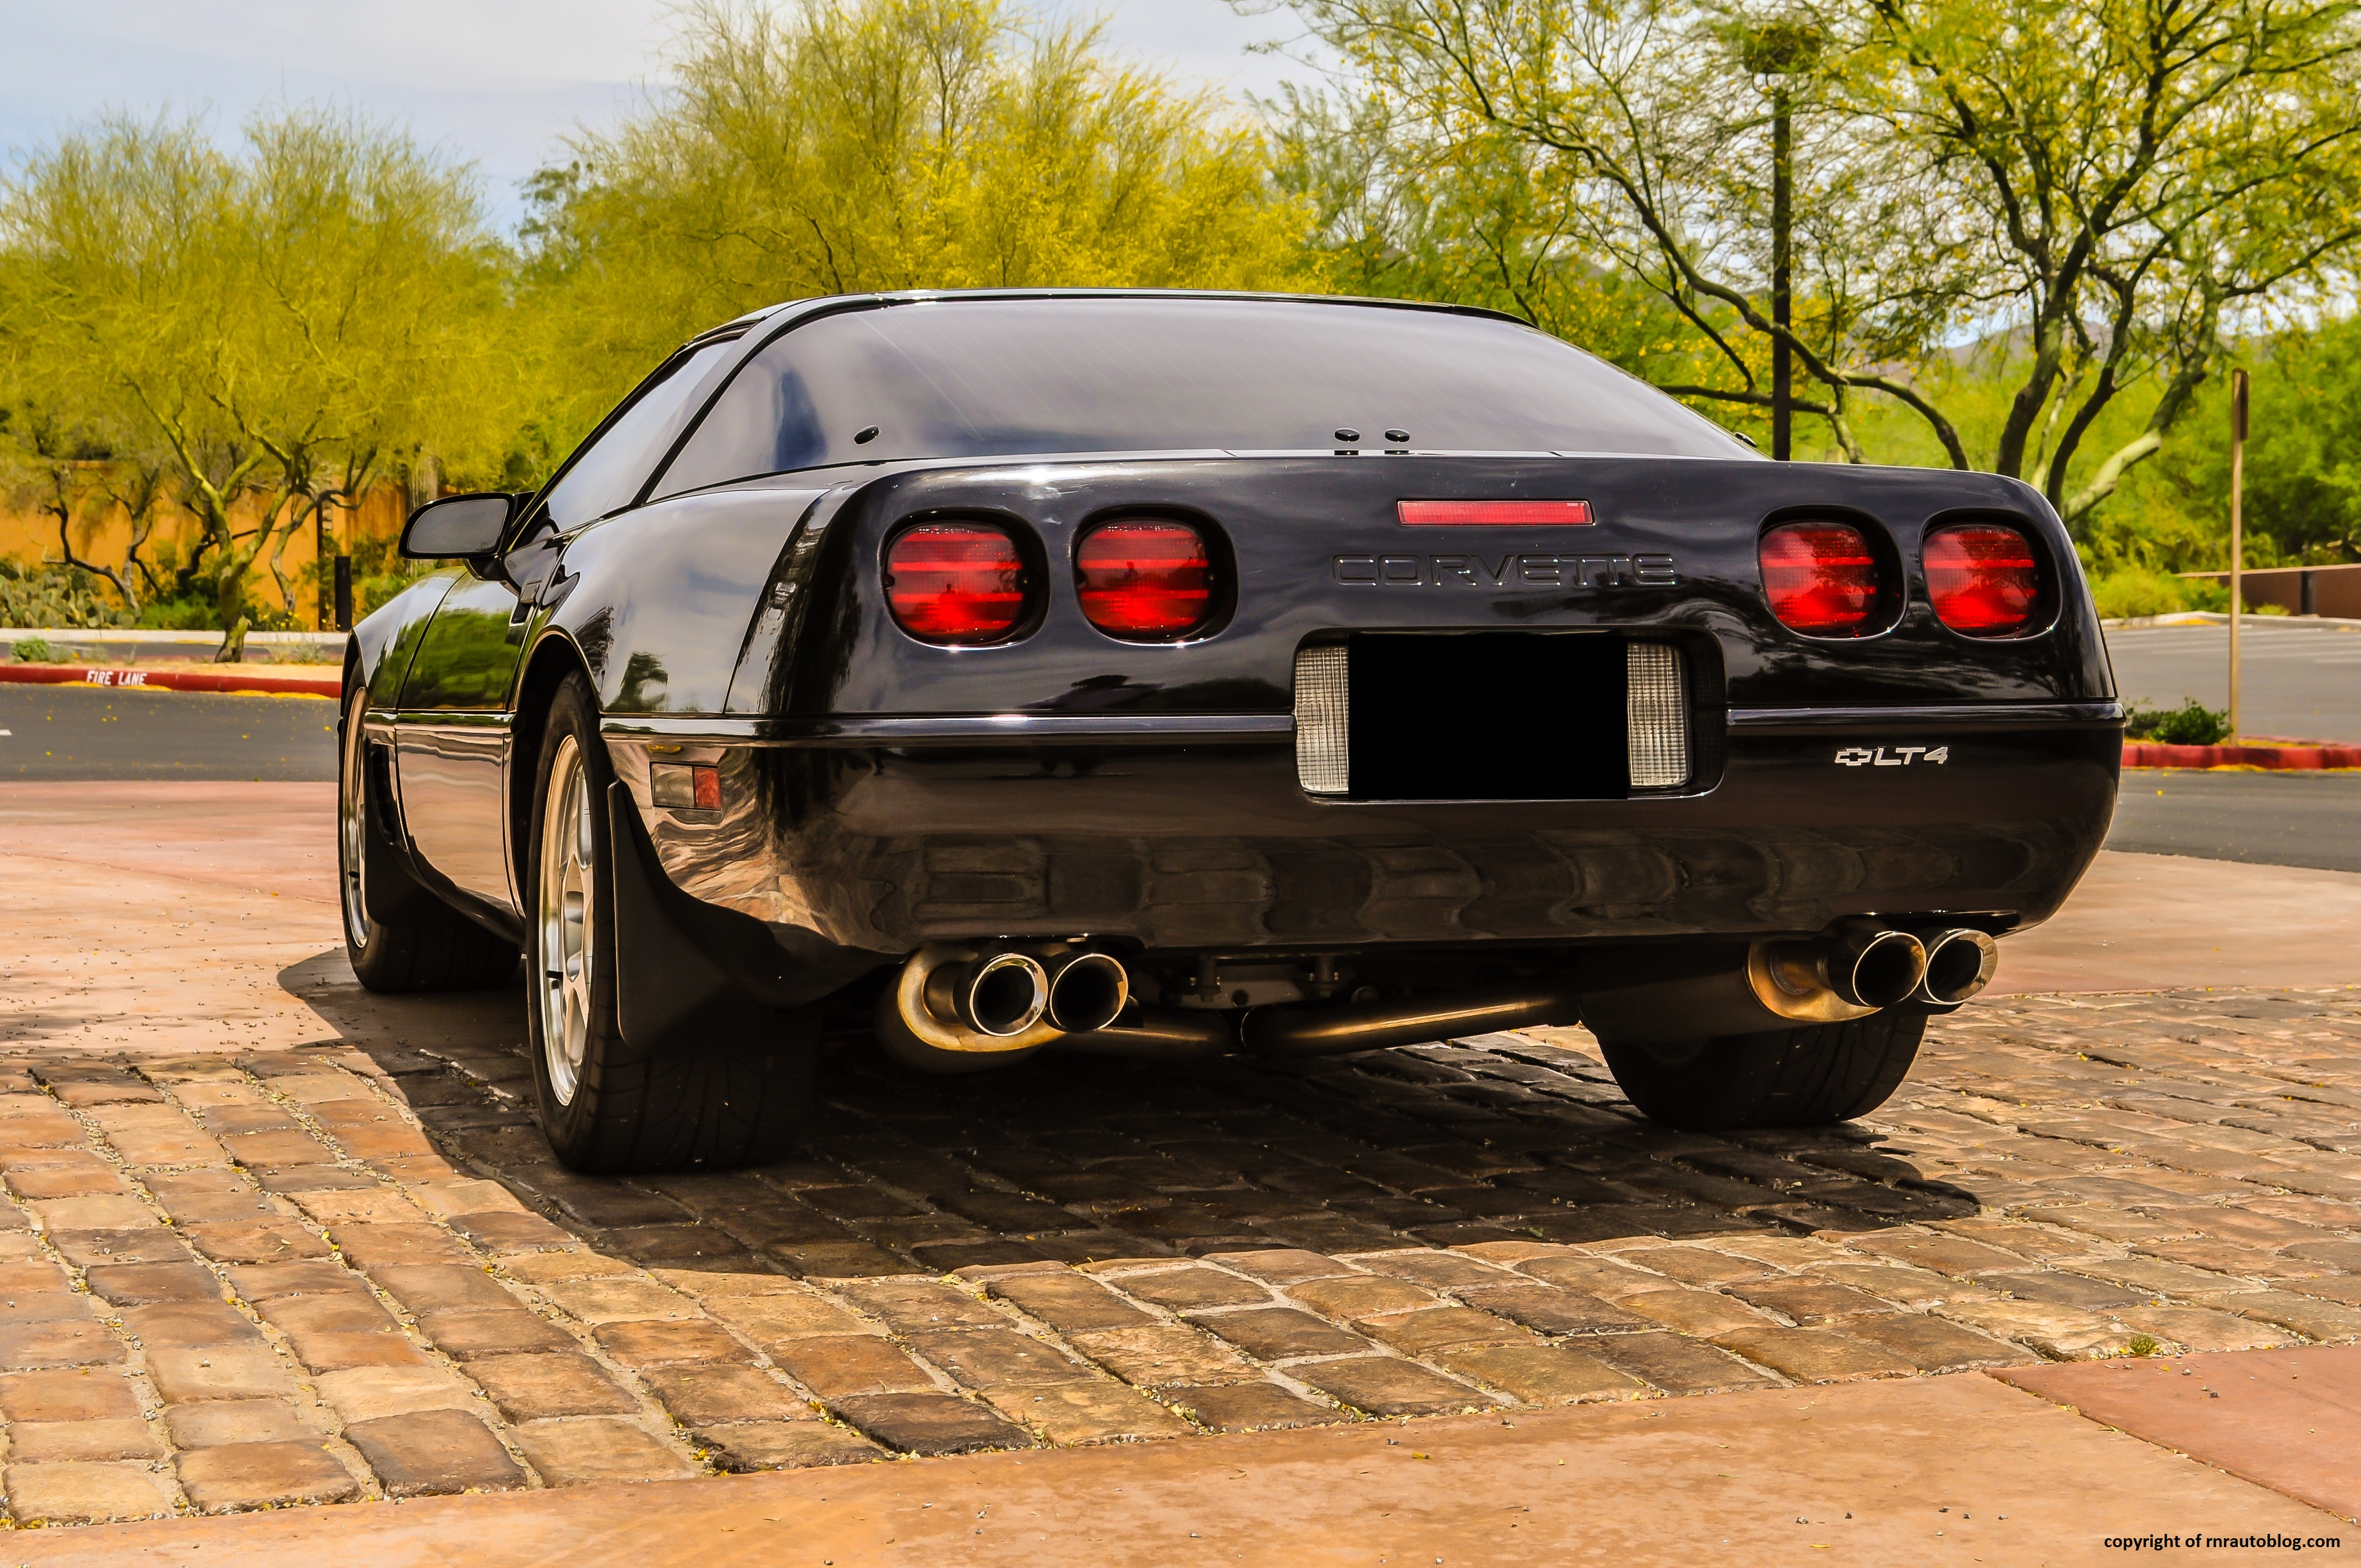 1996 Chevrolet Corvette Lt4 Review Rnr Automotive Blog